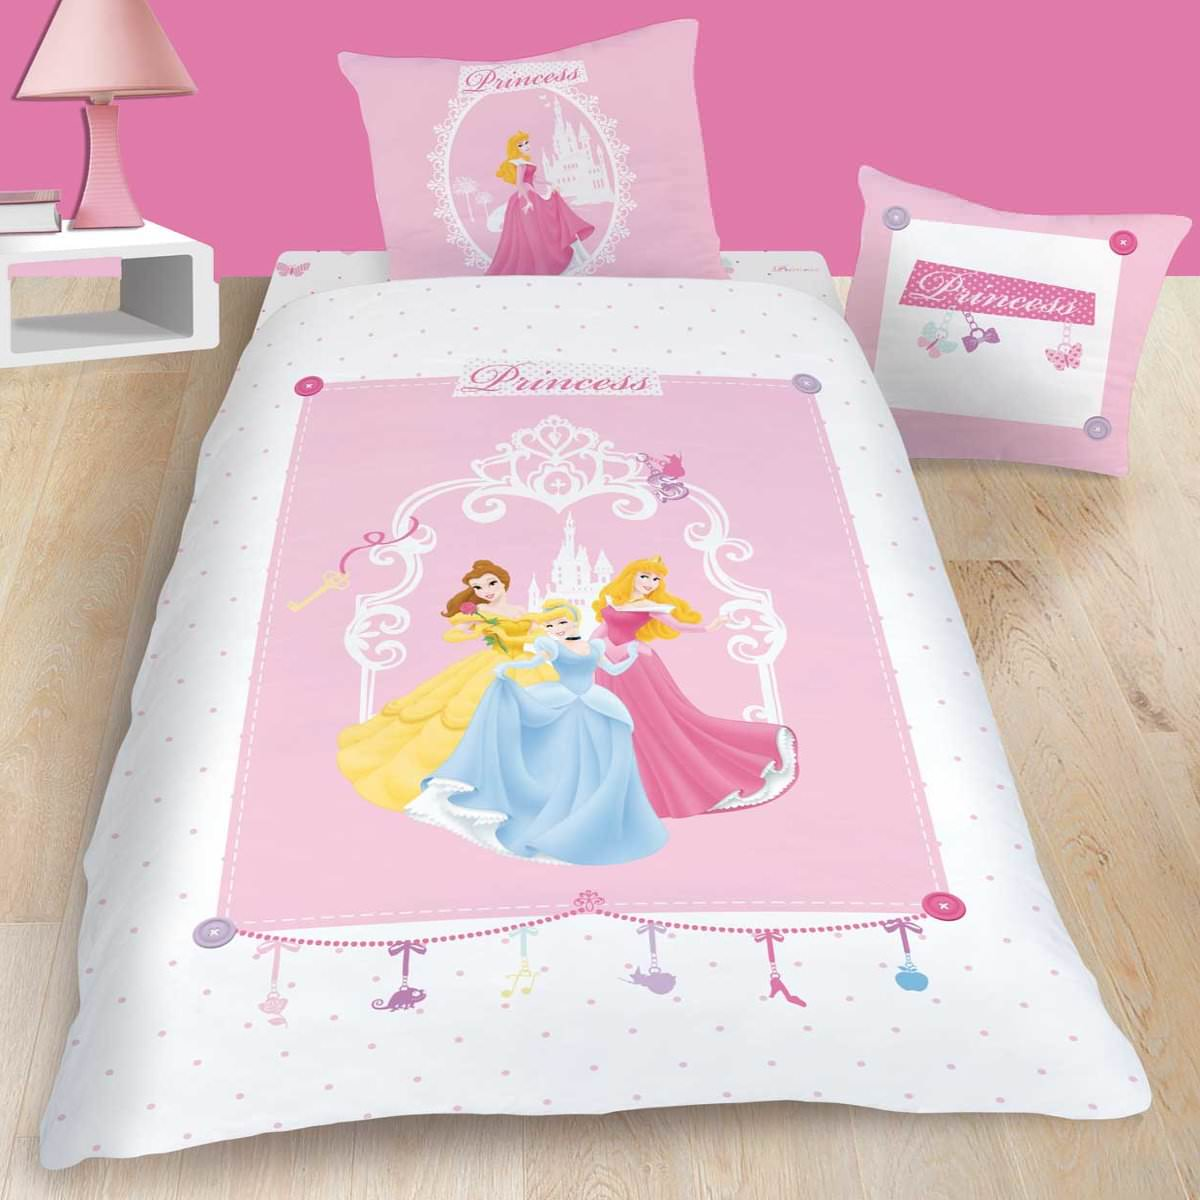 housse de couette disney princesse 140 x 200 cm parure. Black Bedroom Furniture Sets. Home Design Ideas